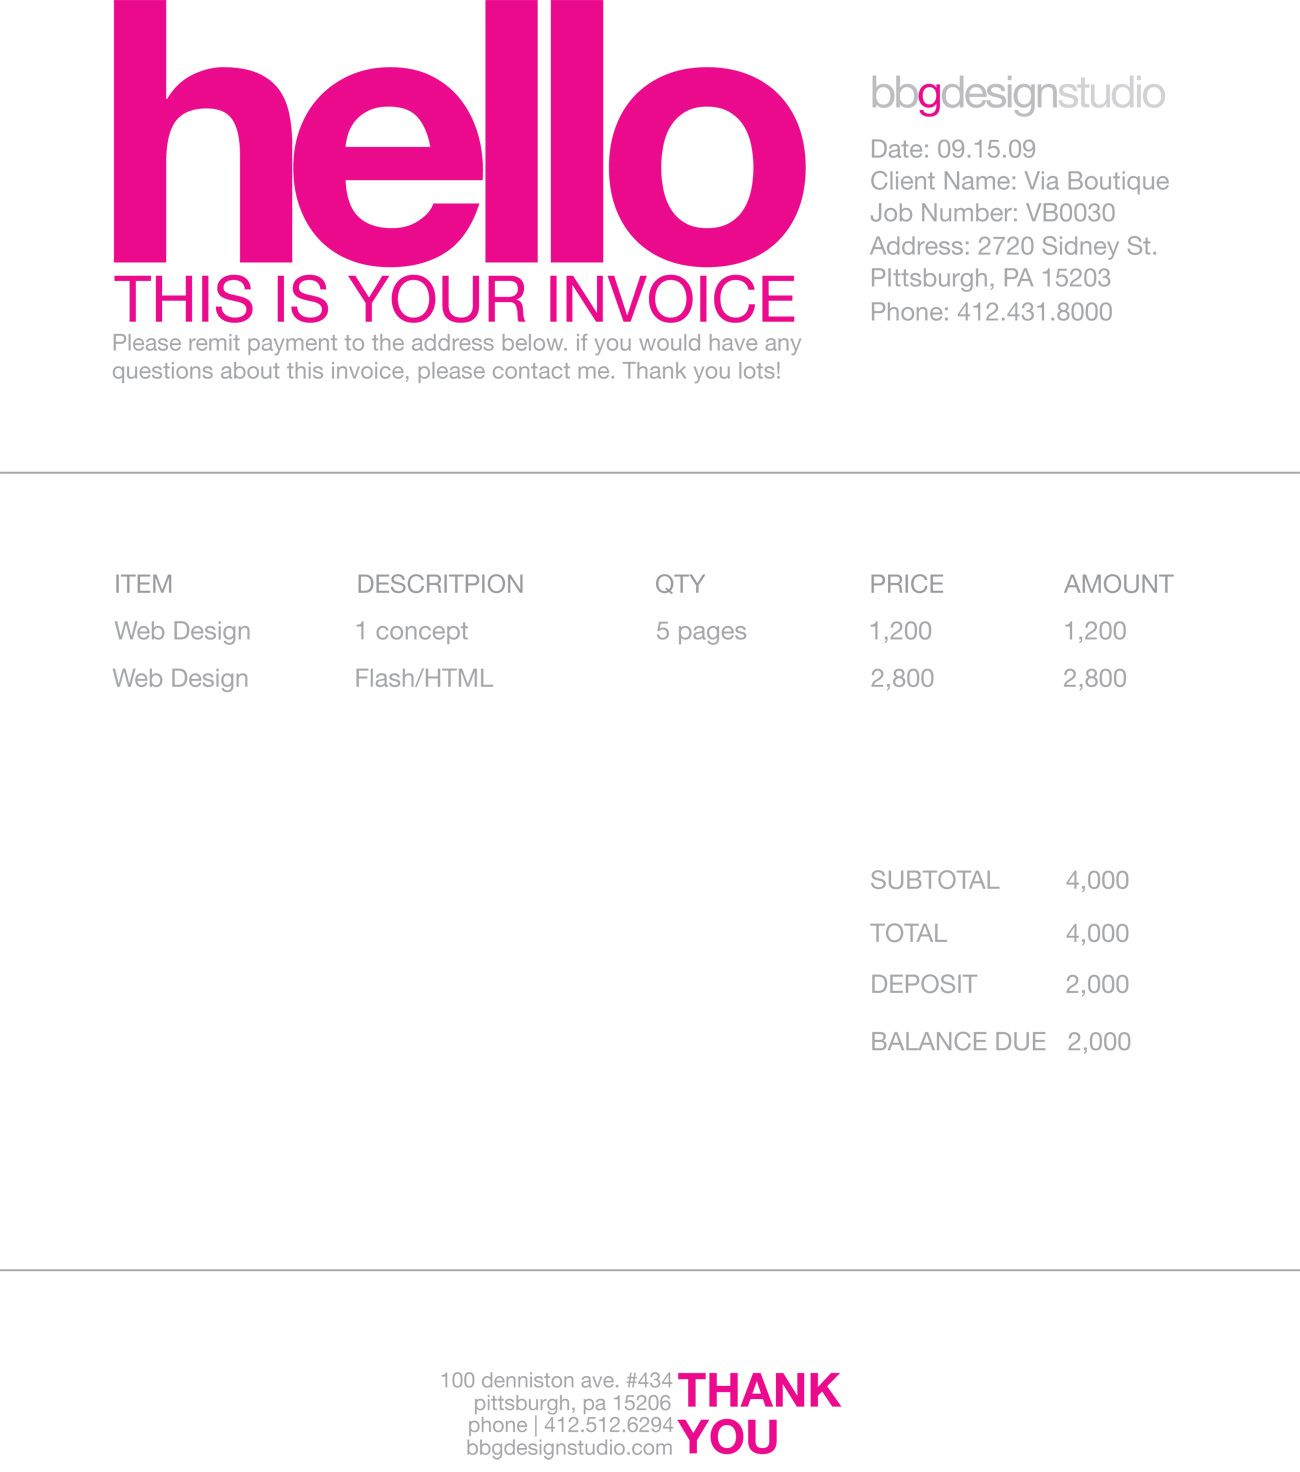 Aaaaeroincus  Marvellous  Images About Invoice Design On Pinterest With Inspiring Free Invoice Maker Software Besides Commercial Invoice Pdf Fillable Furthermore Professional Invoices Template With Archaic Invoice Document Template Also Cool Invoice In Addition Excell Invoice Template And Invoice Definition Business As Well As Invoice Sheets Printable Additionally Carbonless Invoice Forms From Pinterestcom With Aaaaeroincus  Inspiring  Images About Invoice Design On Pinterest With Archaic Free Invoice Maker Software Besides Commercial Invoice Pdf Fillable Furthermore Professional Invoices Template And Marvellous Invoice Document Template Also Cool Invoice In Addition Excell Invoice Template From Pinterestcom